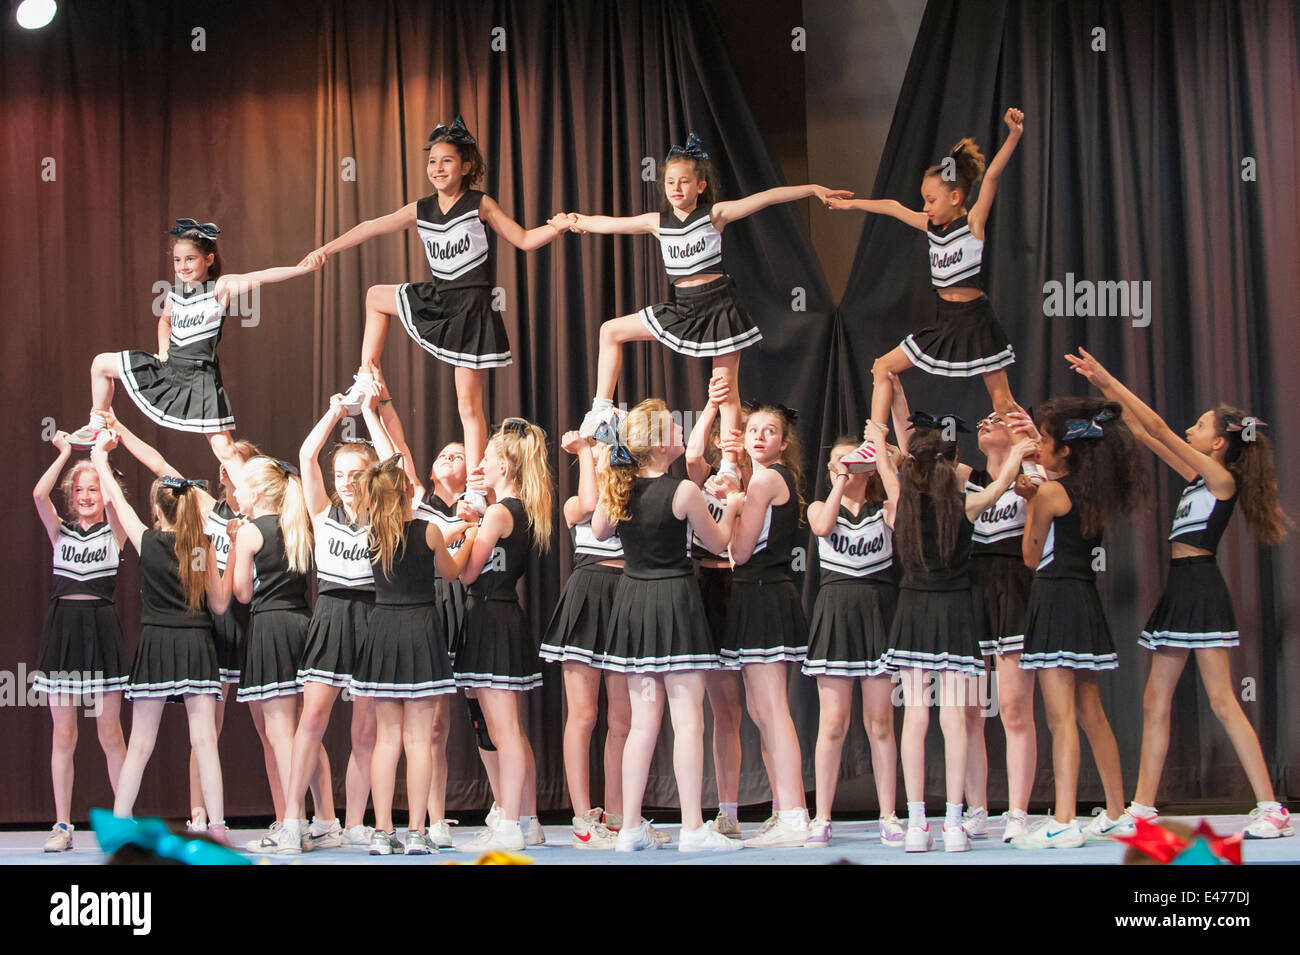 North West London junior cheer leading competition 2014 The Wolves winning team in acrobatic formation - Stock Image